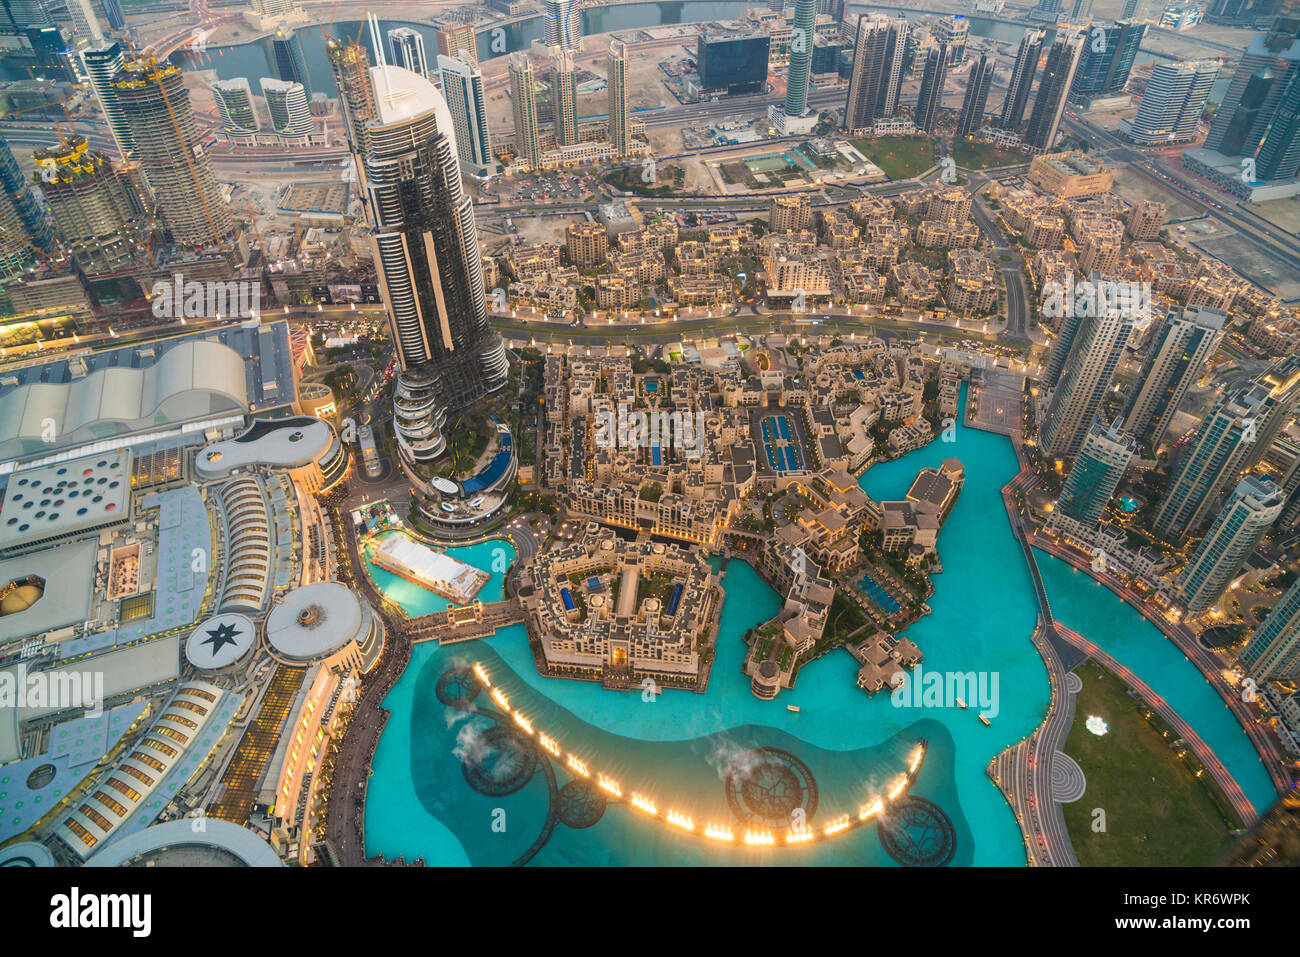 High angle view from tall skyscraper into urban area with pools and fountains. - Stock Image